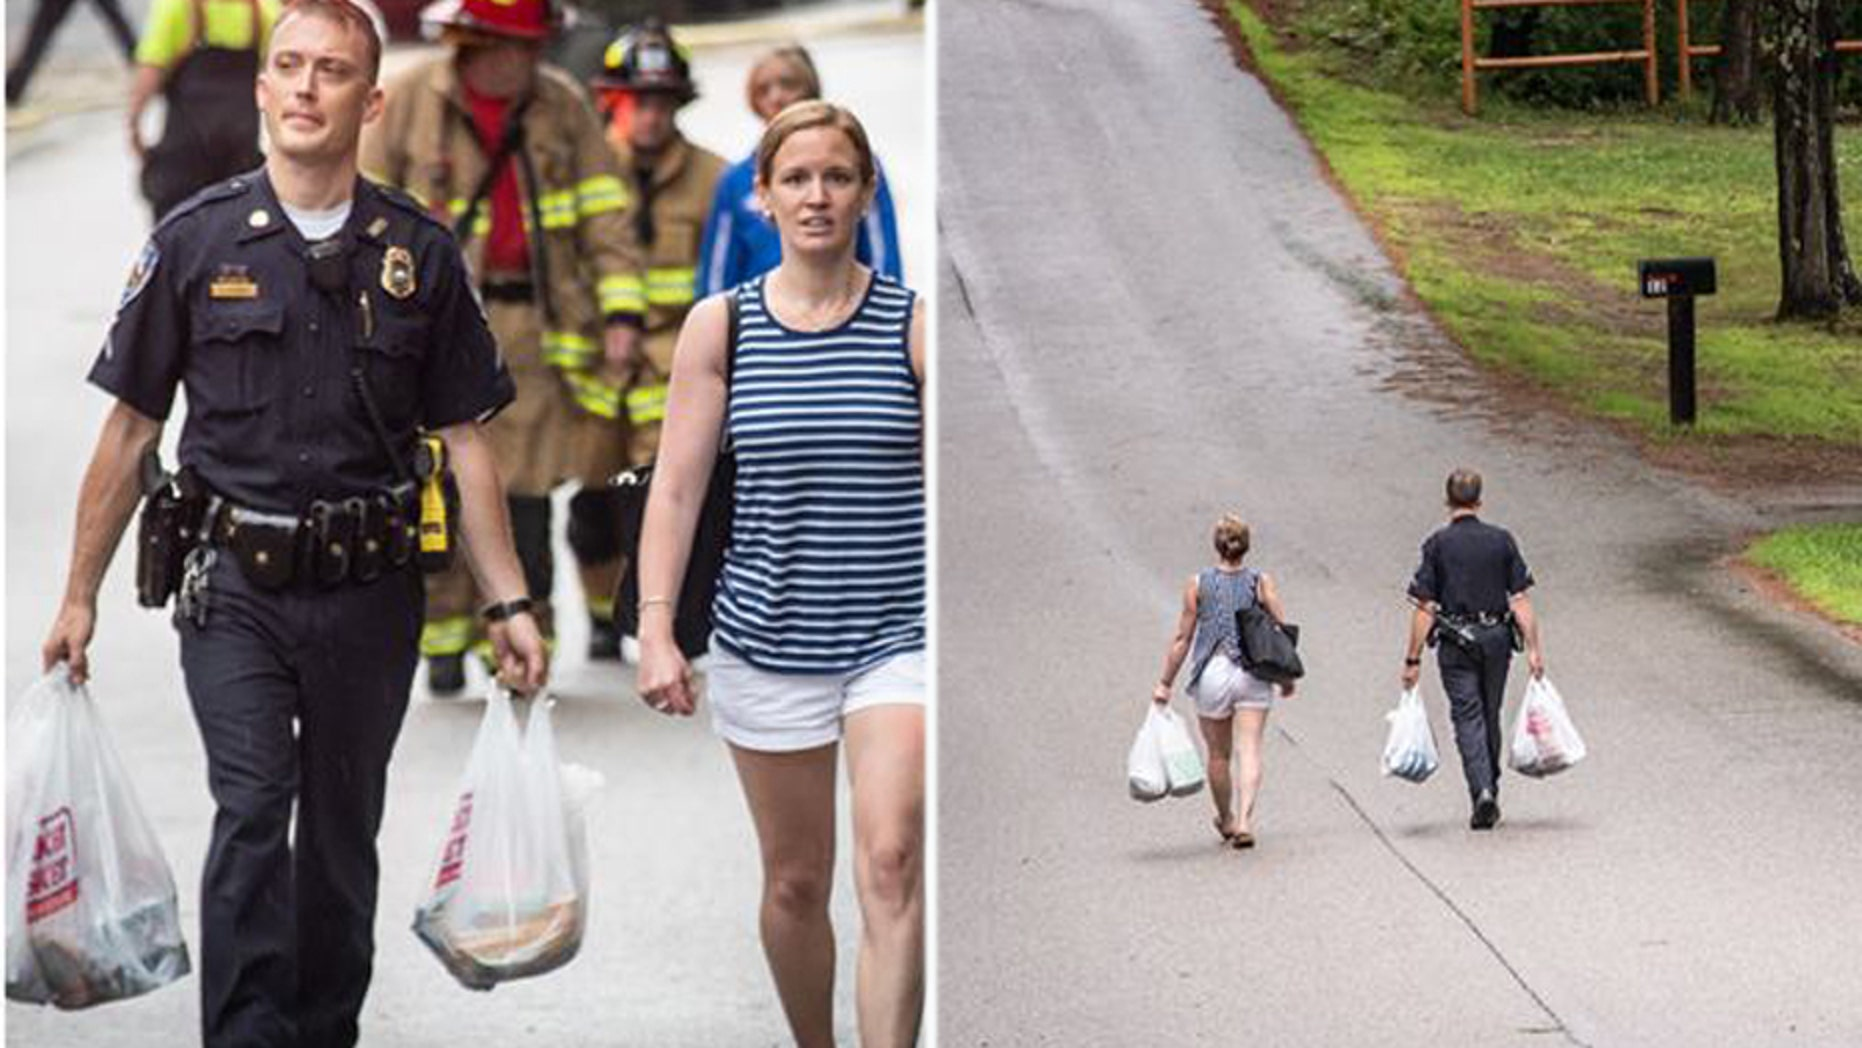 On July 17, photos of the good deed by Master Patrol Officer Tyler Coady of the Bow Police Department went viral on Facebook.